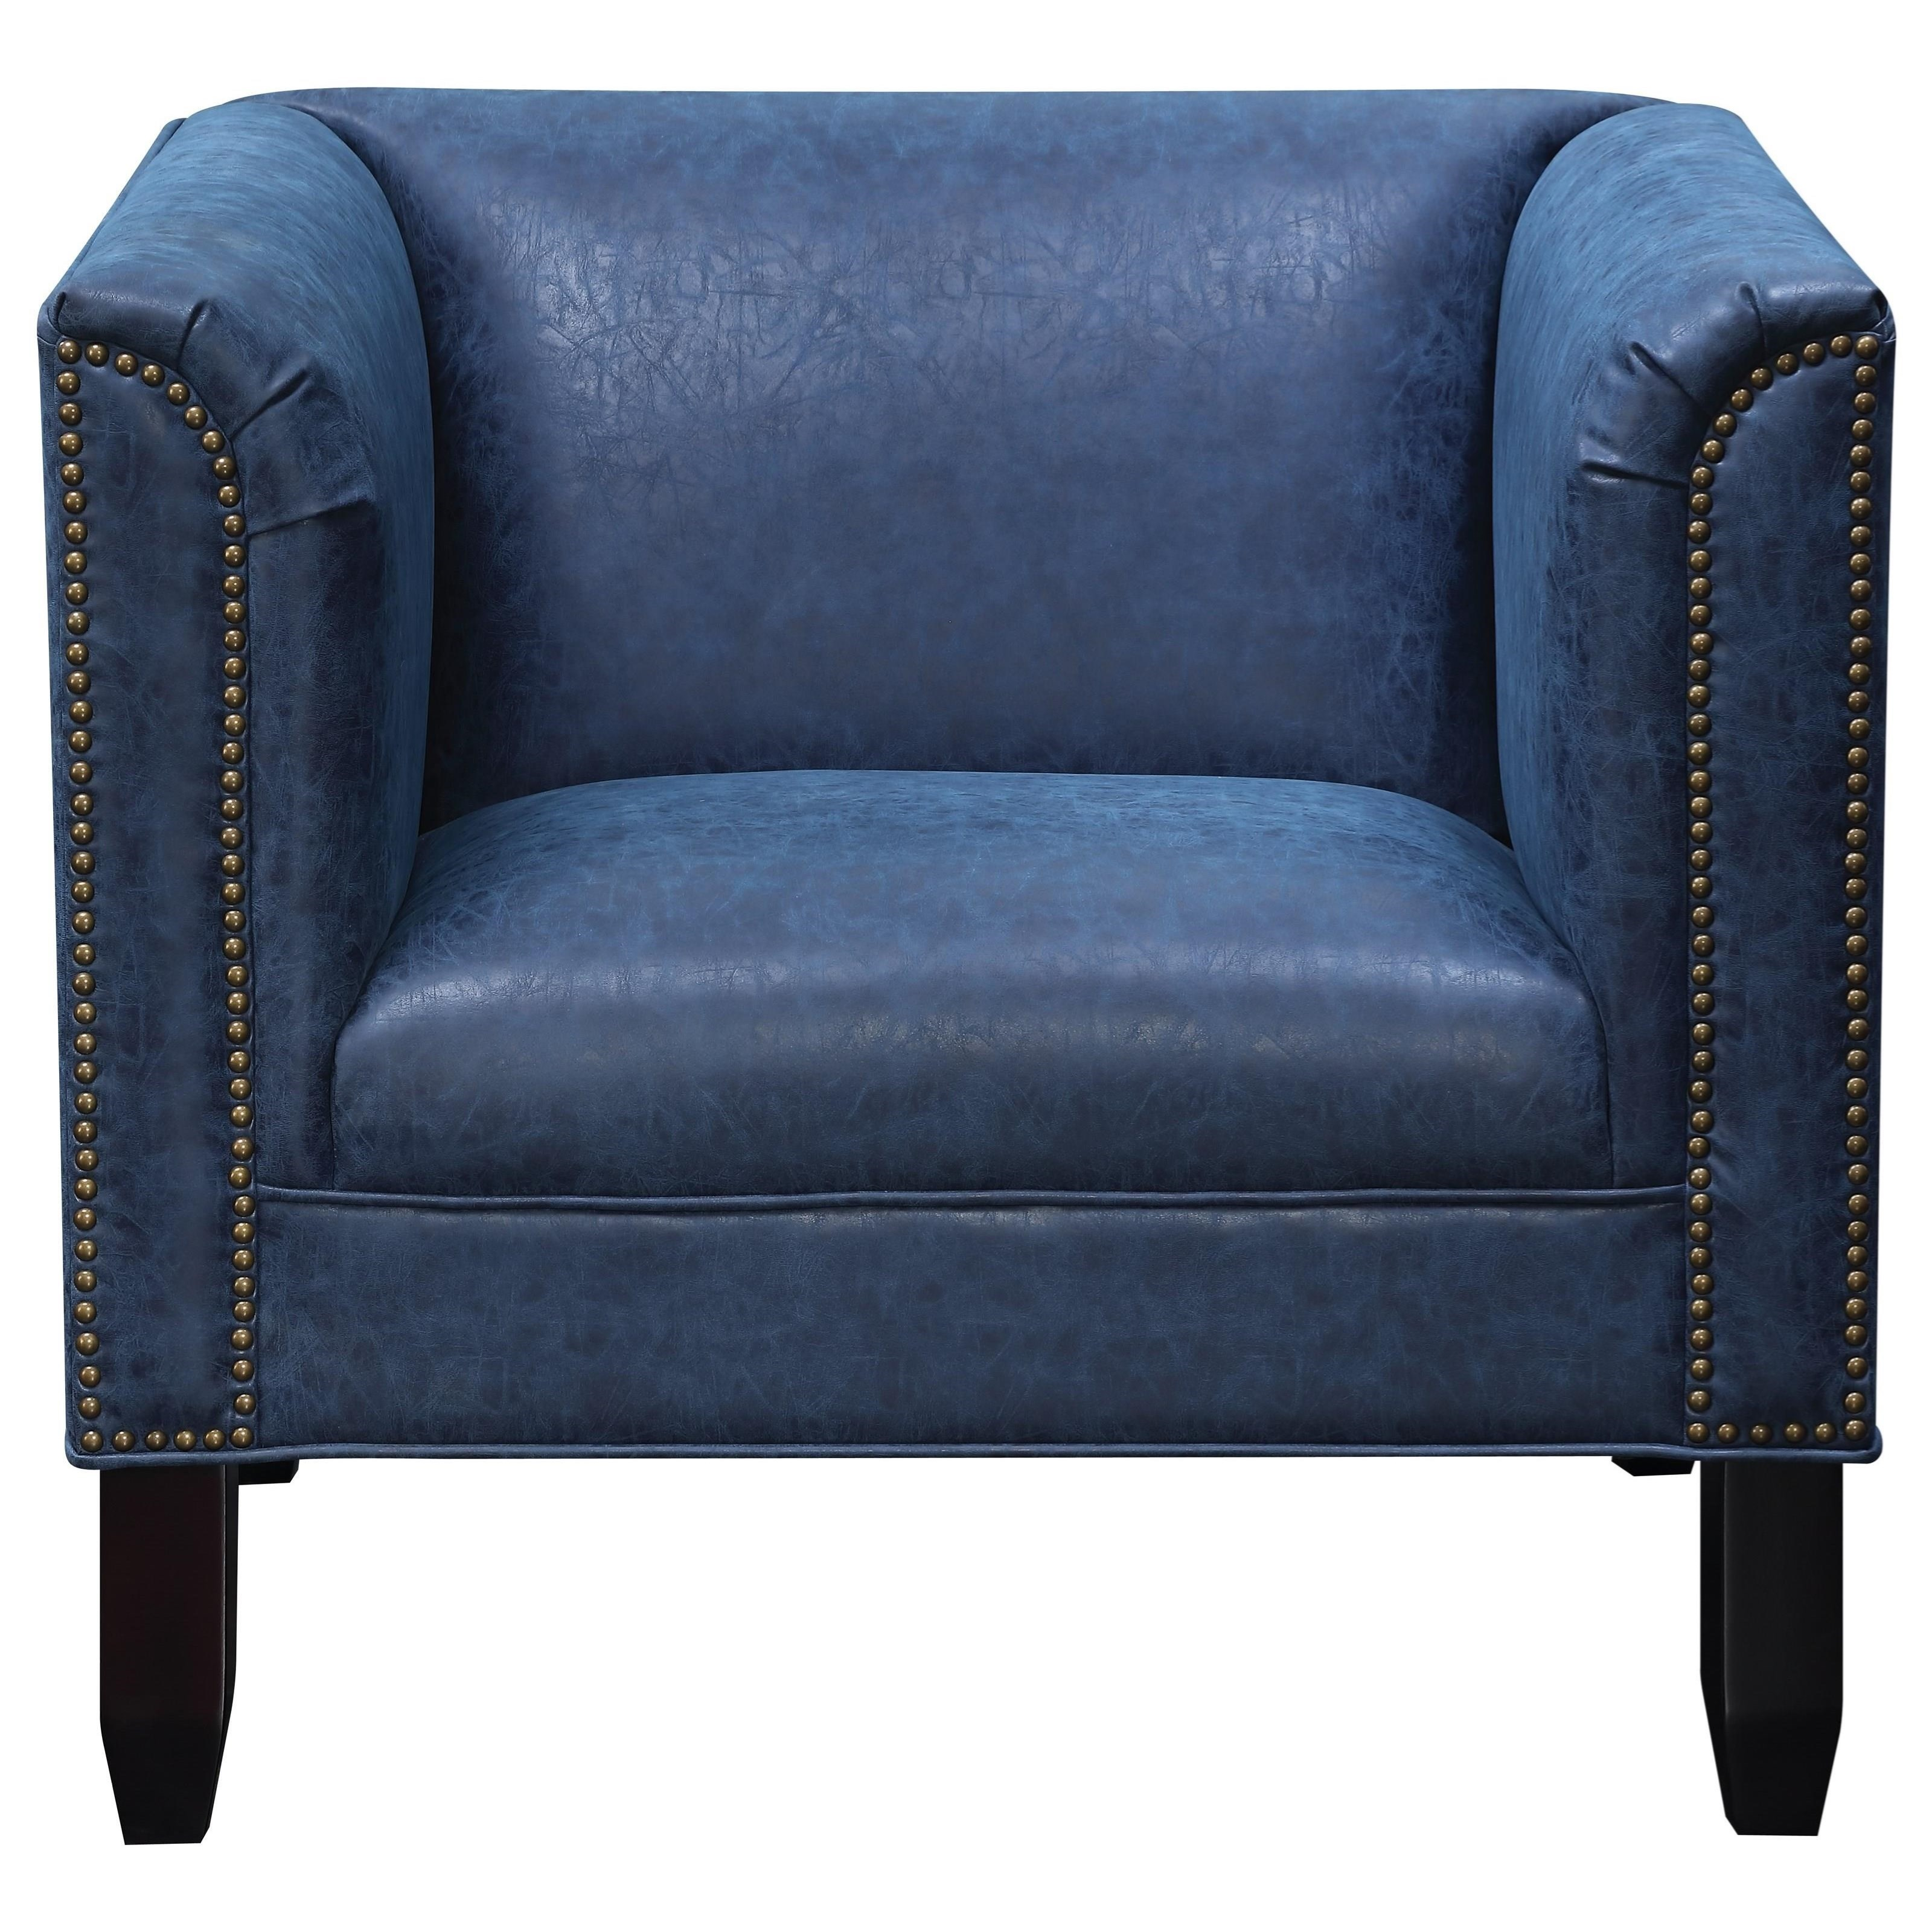 Donny Osmond Home Accent Seating Accent Chair - Item Number: 902986